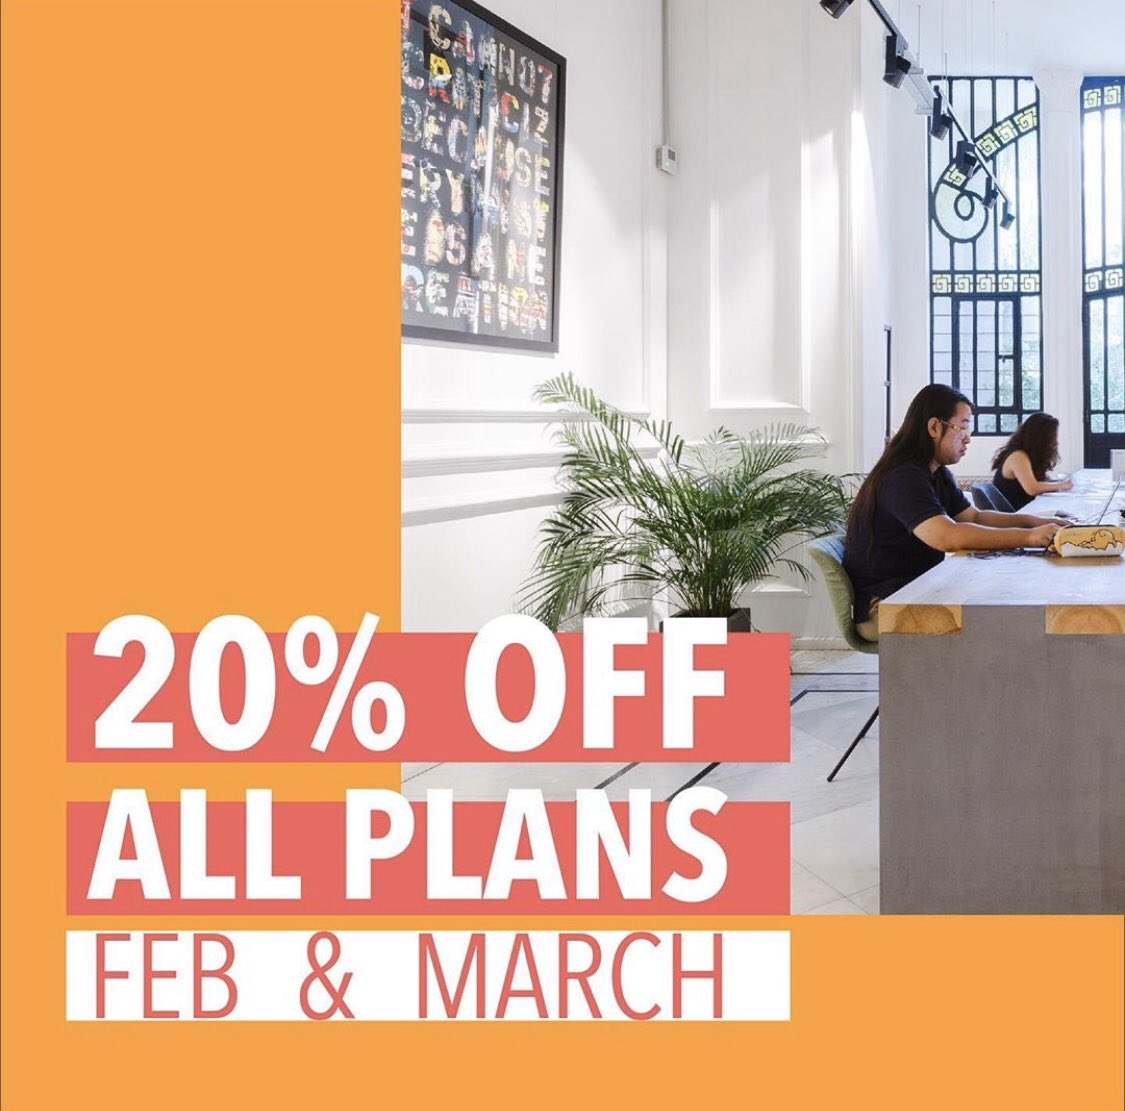 Are you ready to move in?! Benefit from 20% OFF on all plans throughout February and March!! Available at all our Lebanon locations. https://t.co/8BQBOLv9yR https://t.co/wnbvhp3rMj